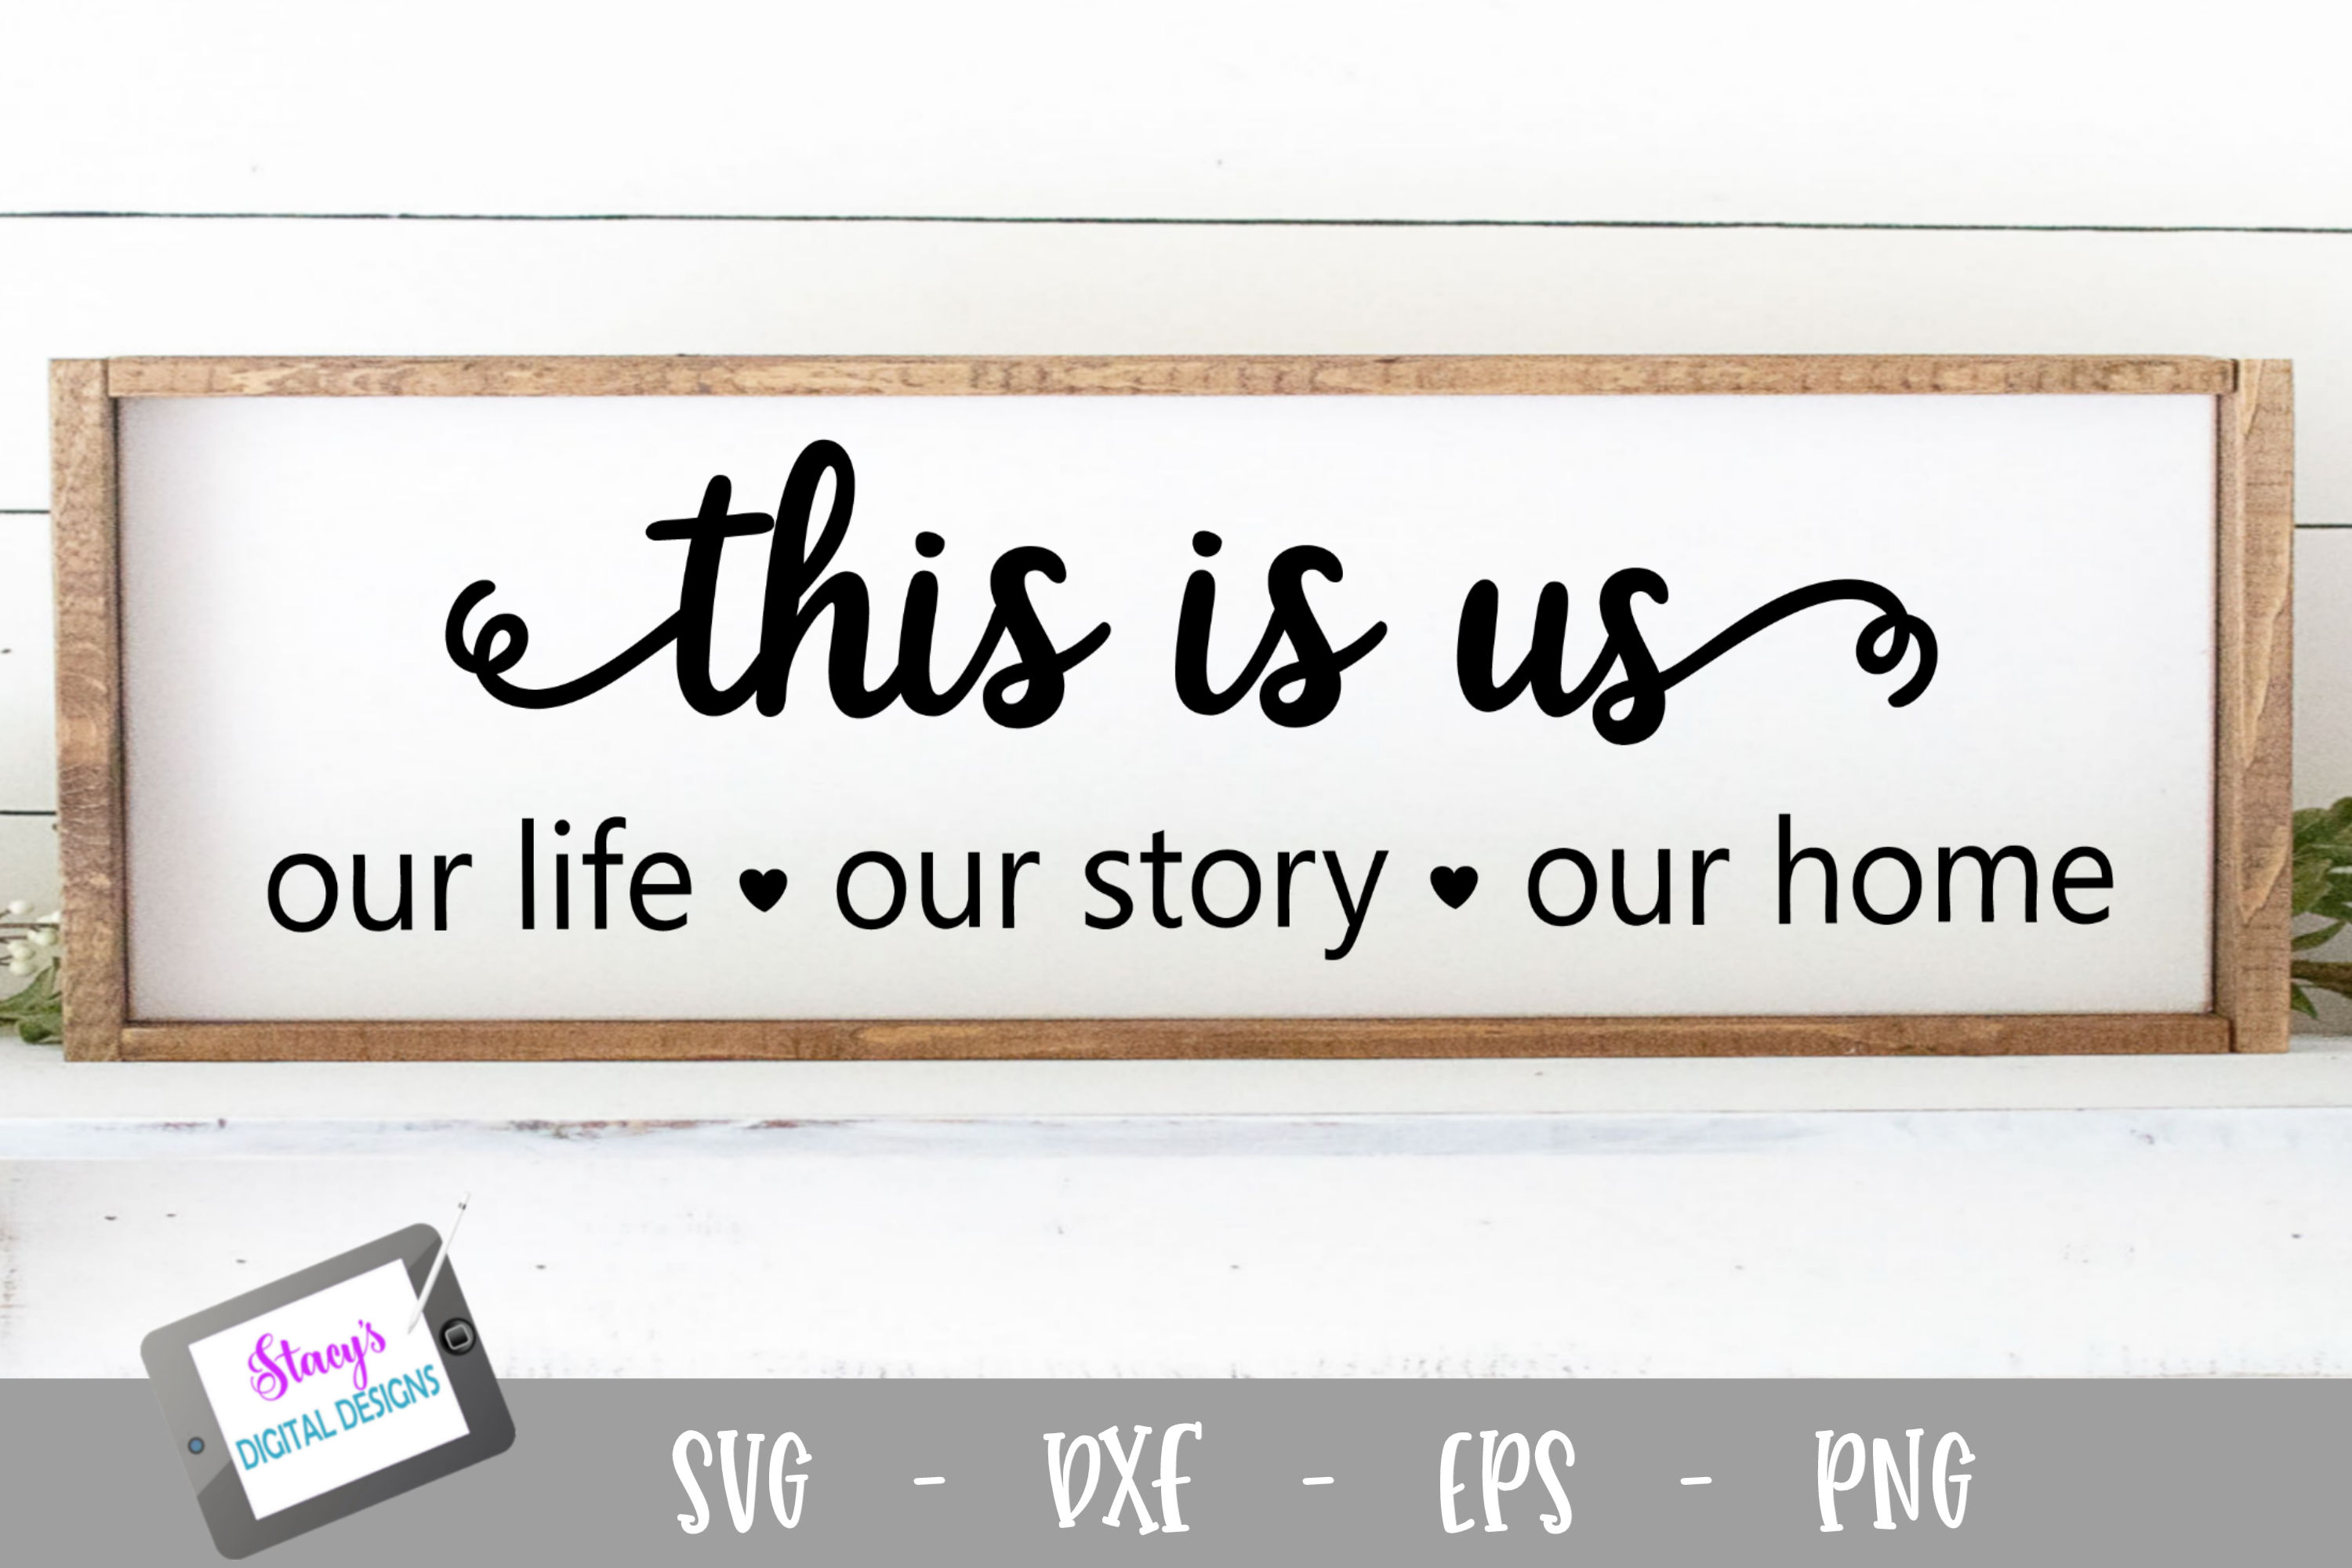 Download Free This Is Us Design Graphic By Stacysdigitaldesigns Creative Fabrica for Cricut Explore, Silhouette and other cutting machines.